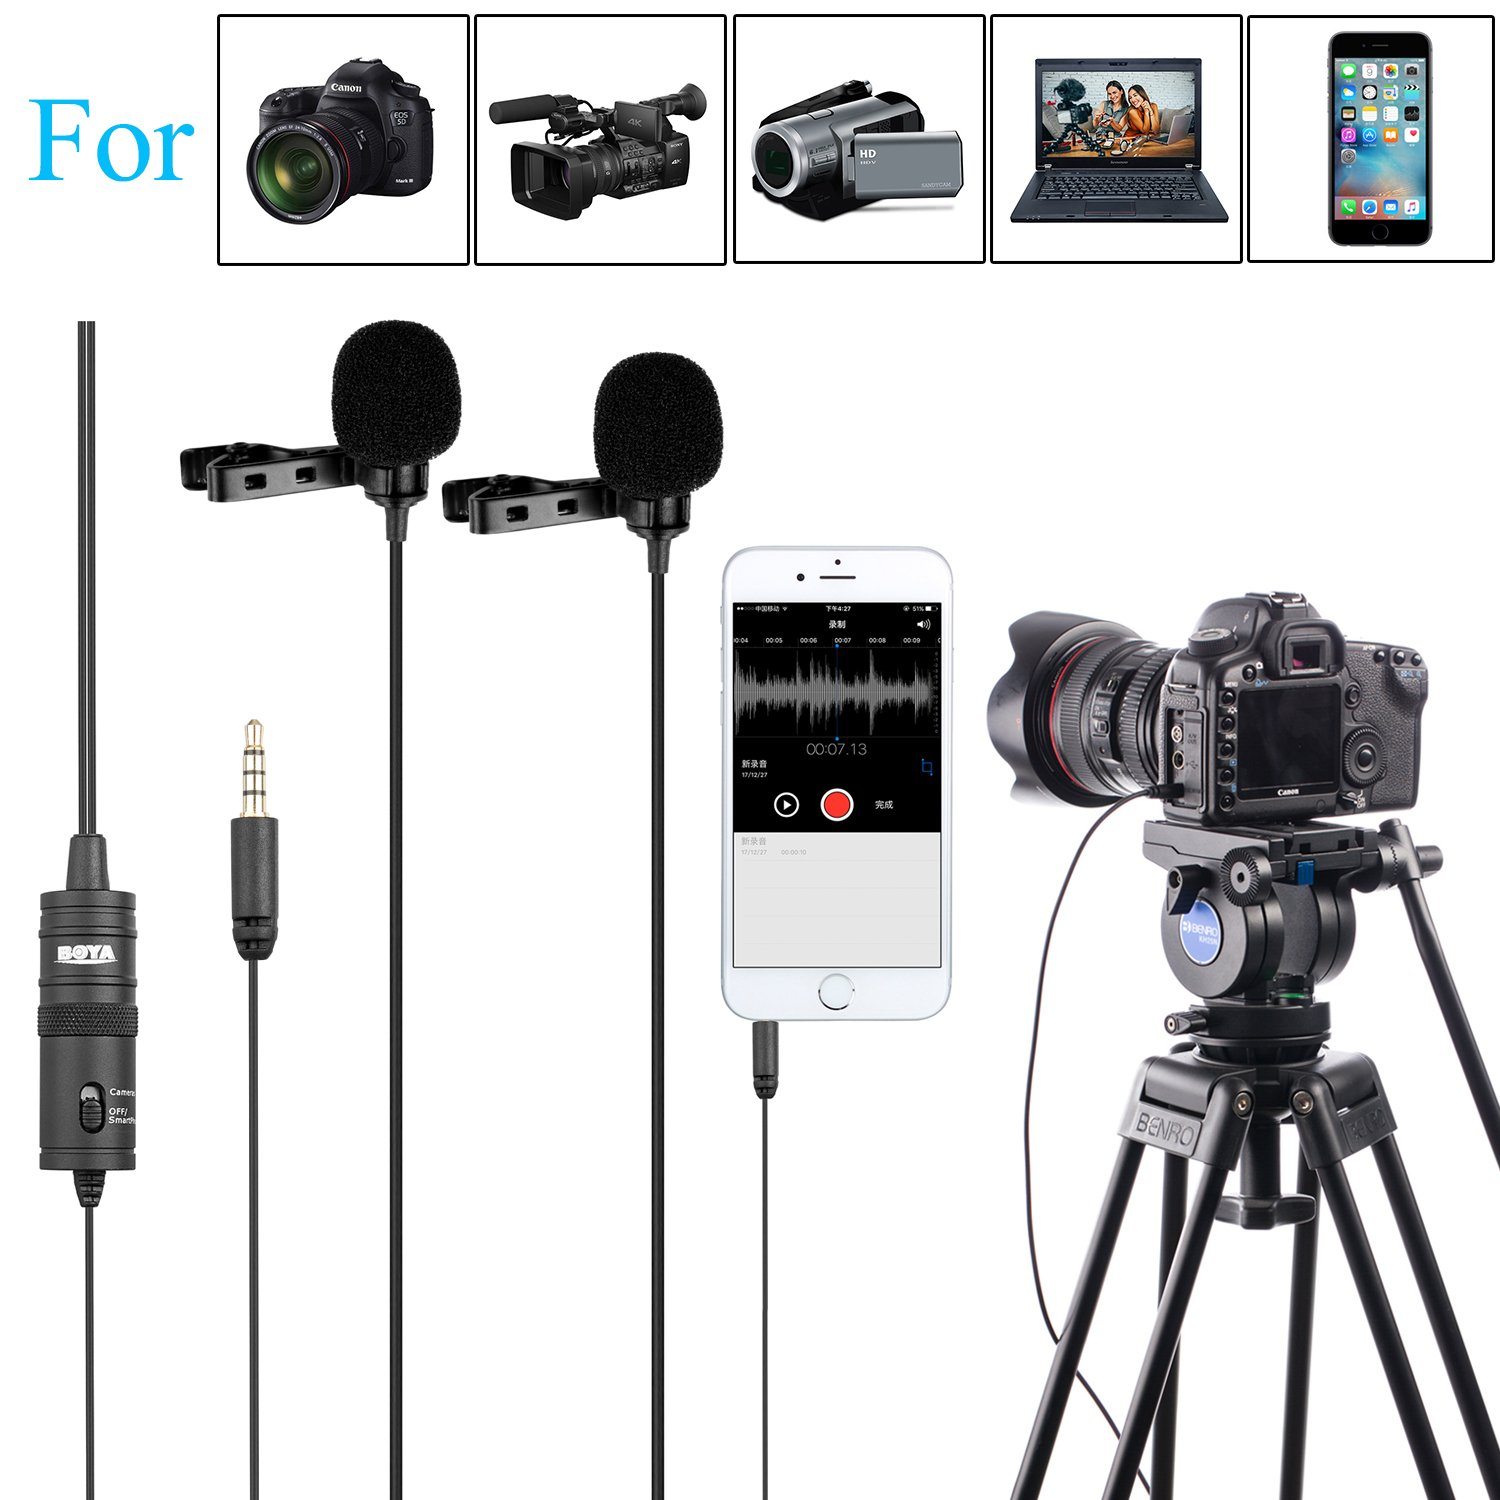 157'' BOYA BY-M1DM Dual-head Lavalier Universal Lapel Microphone with 1/8 Plug Adapter for iPhone 8 7 Smartphones Canon Nikon DSLR Cameras Camcorders PC Audio Recorder Podcast Youtube Video Livestream BY-0M1DM